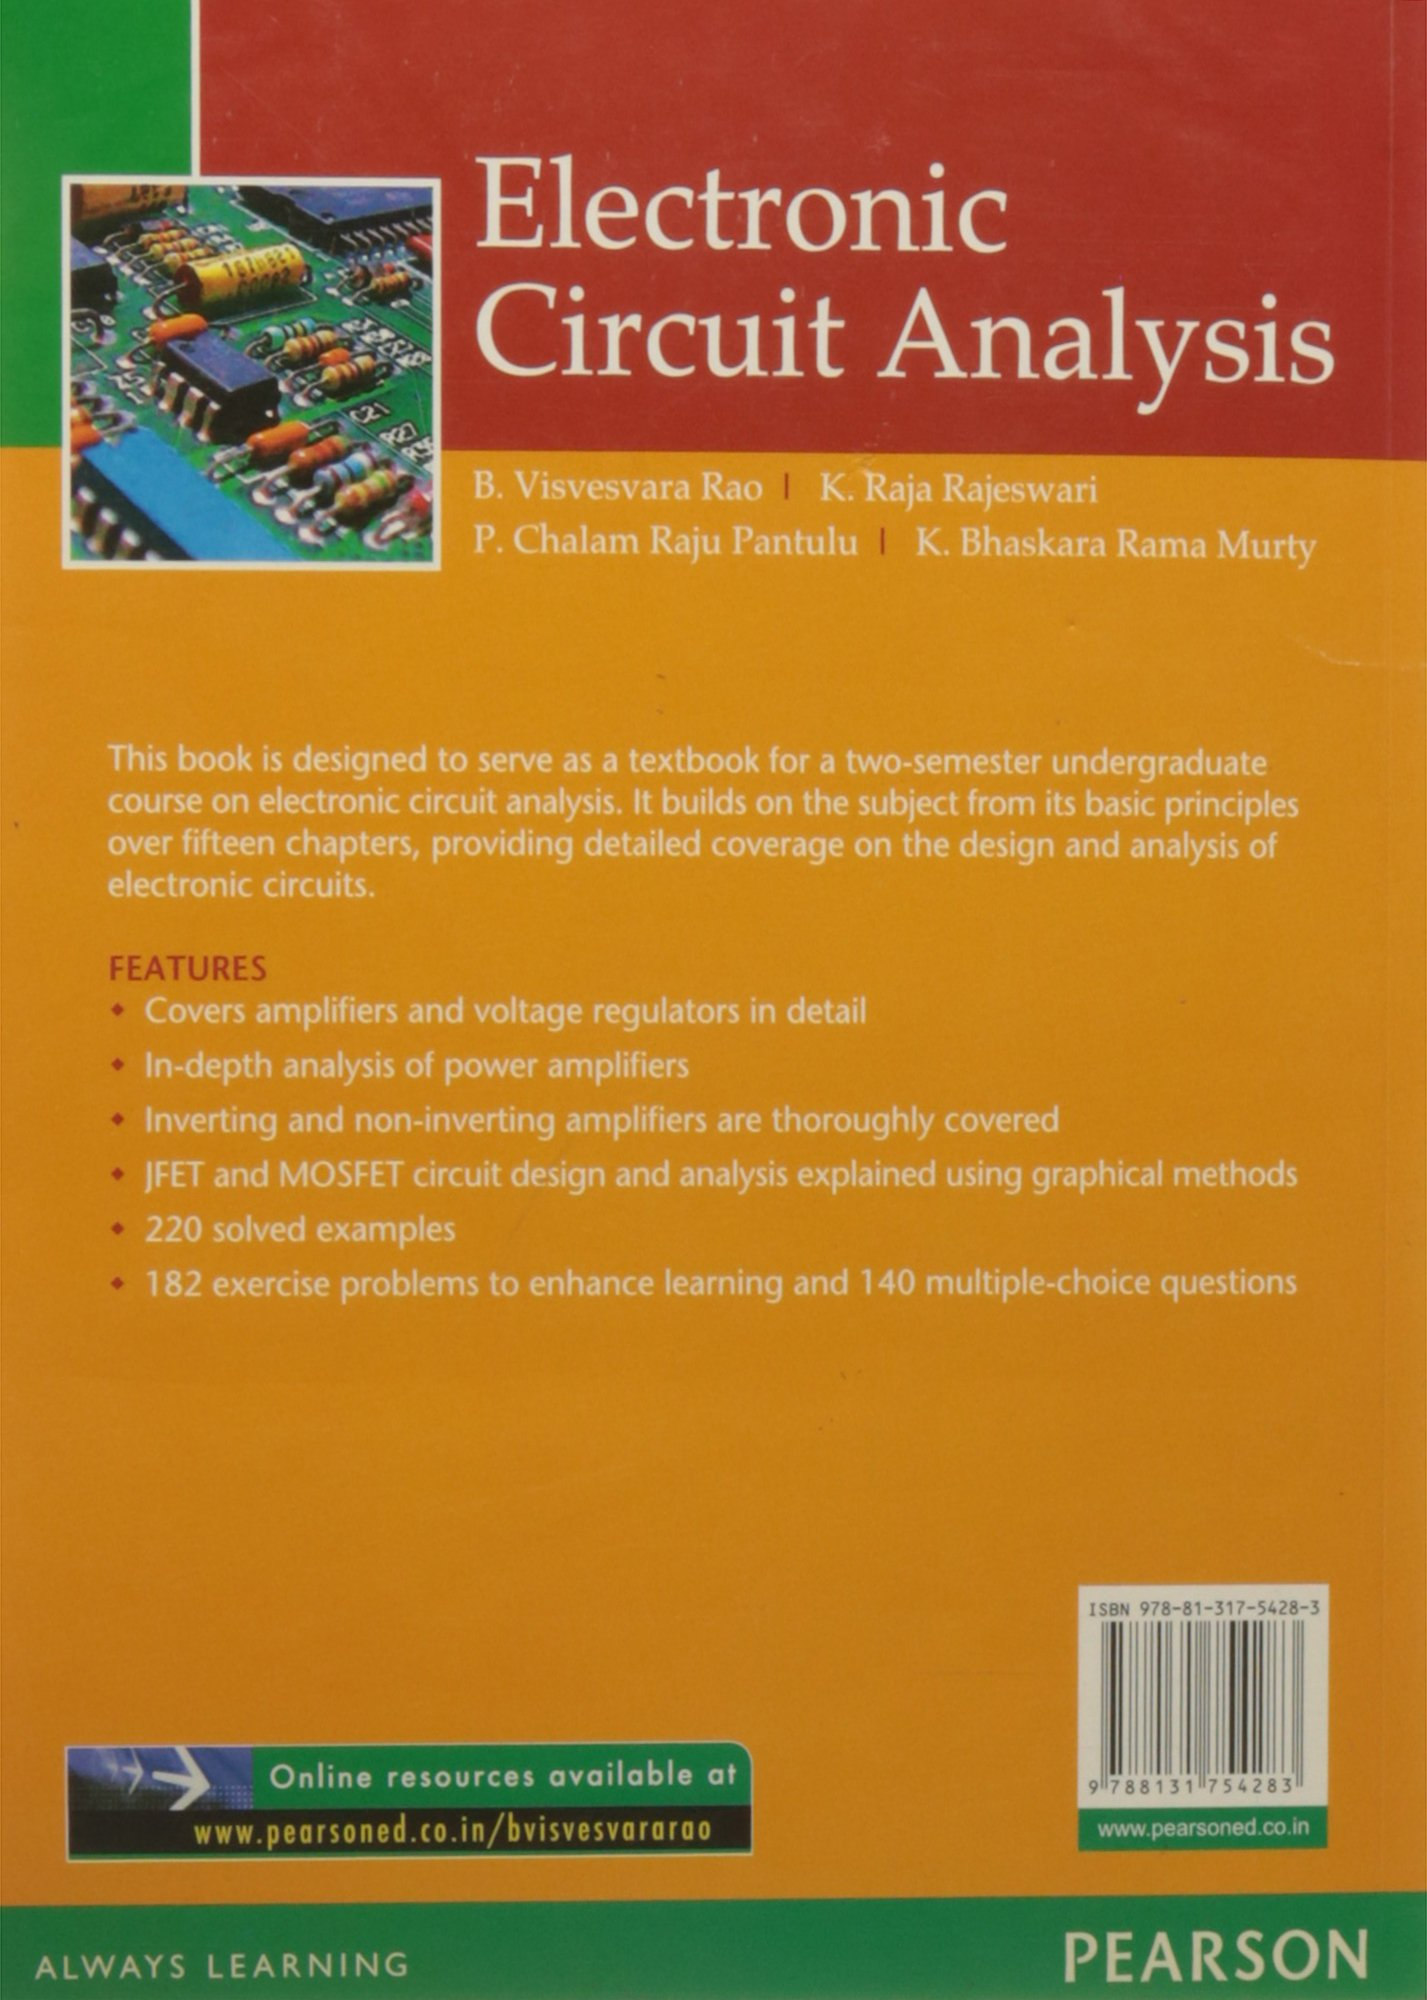 Buy Electronic Circuit Analysis 1e Book Online At Low Prices In Design India Reviews Ratings